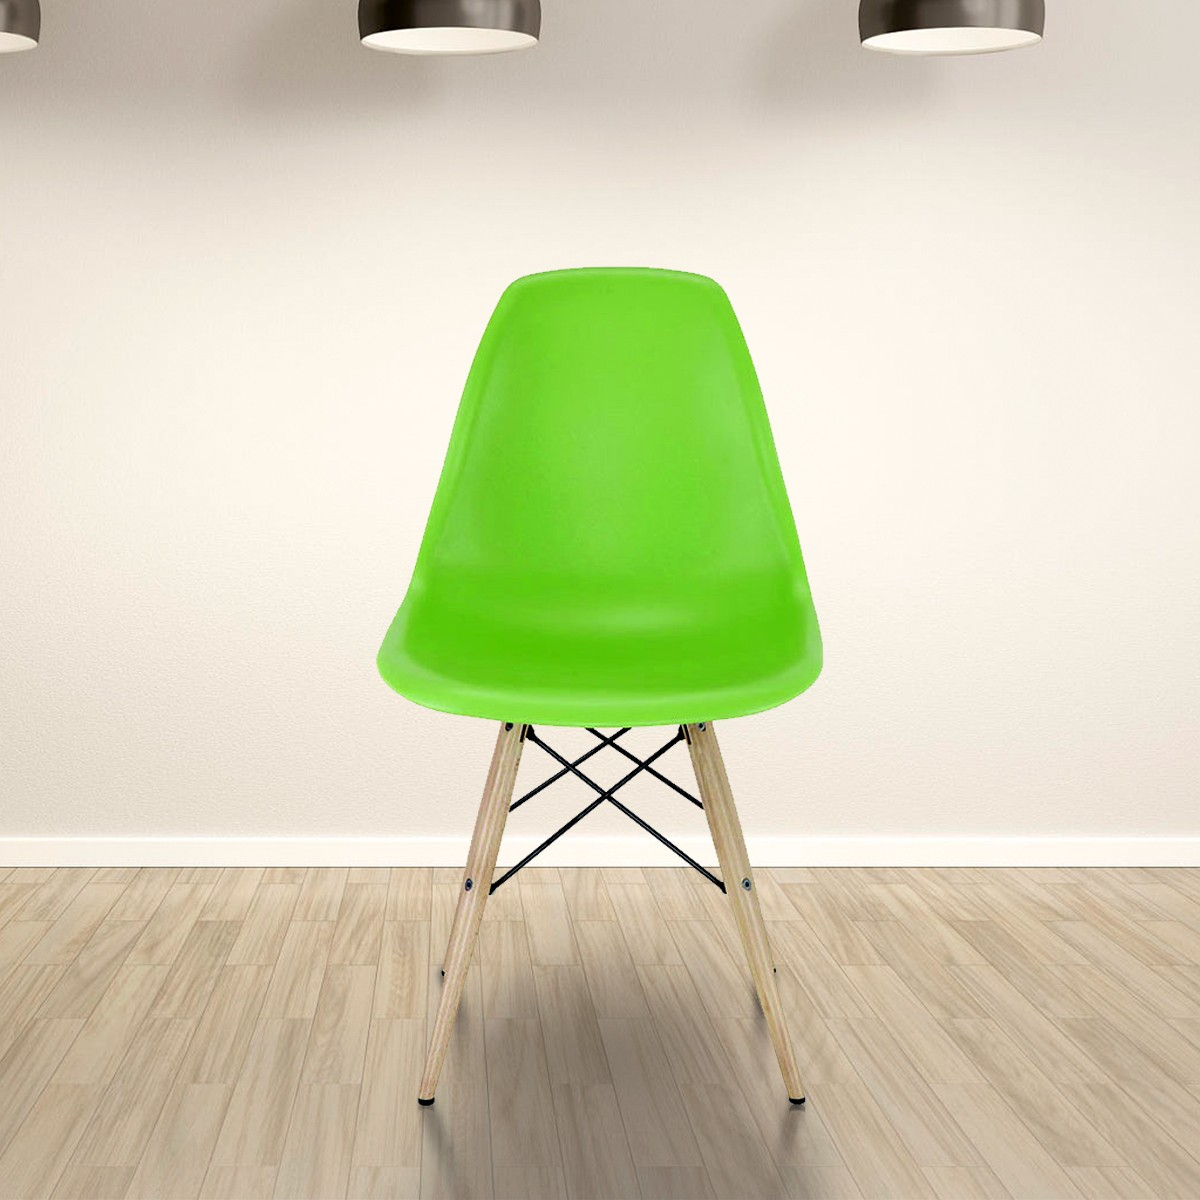 Molded Plastic Chair in Green with Wood Legs (T811E006-GN)